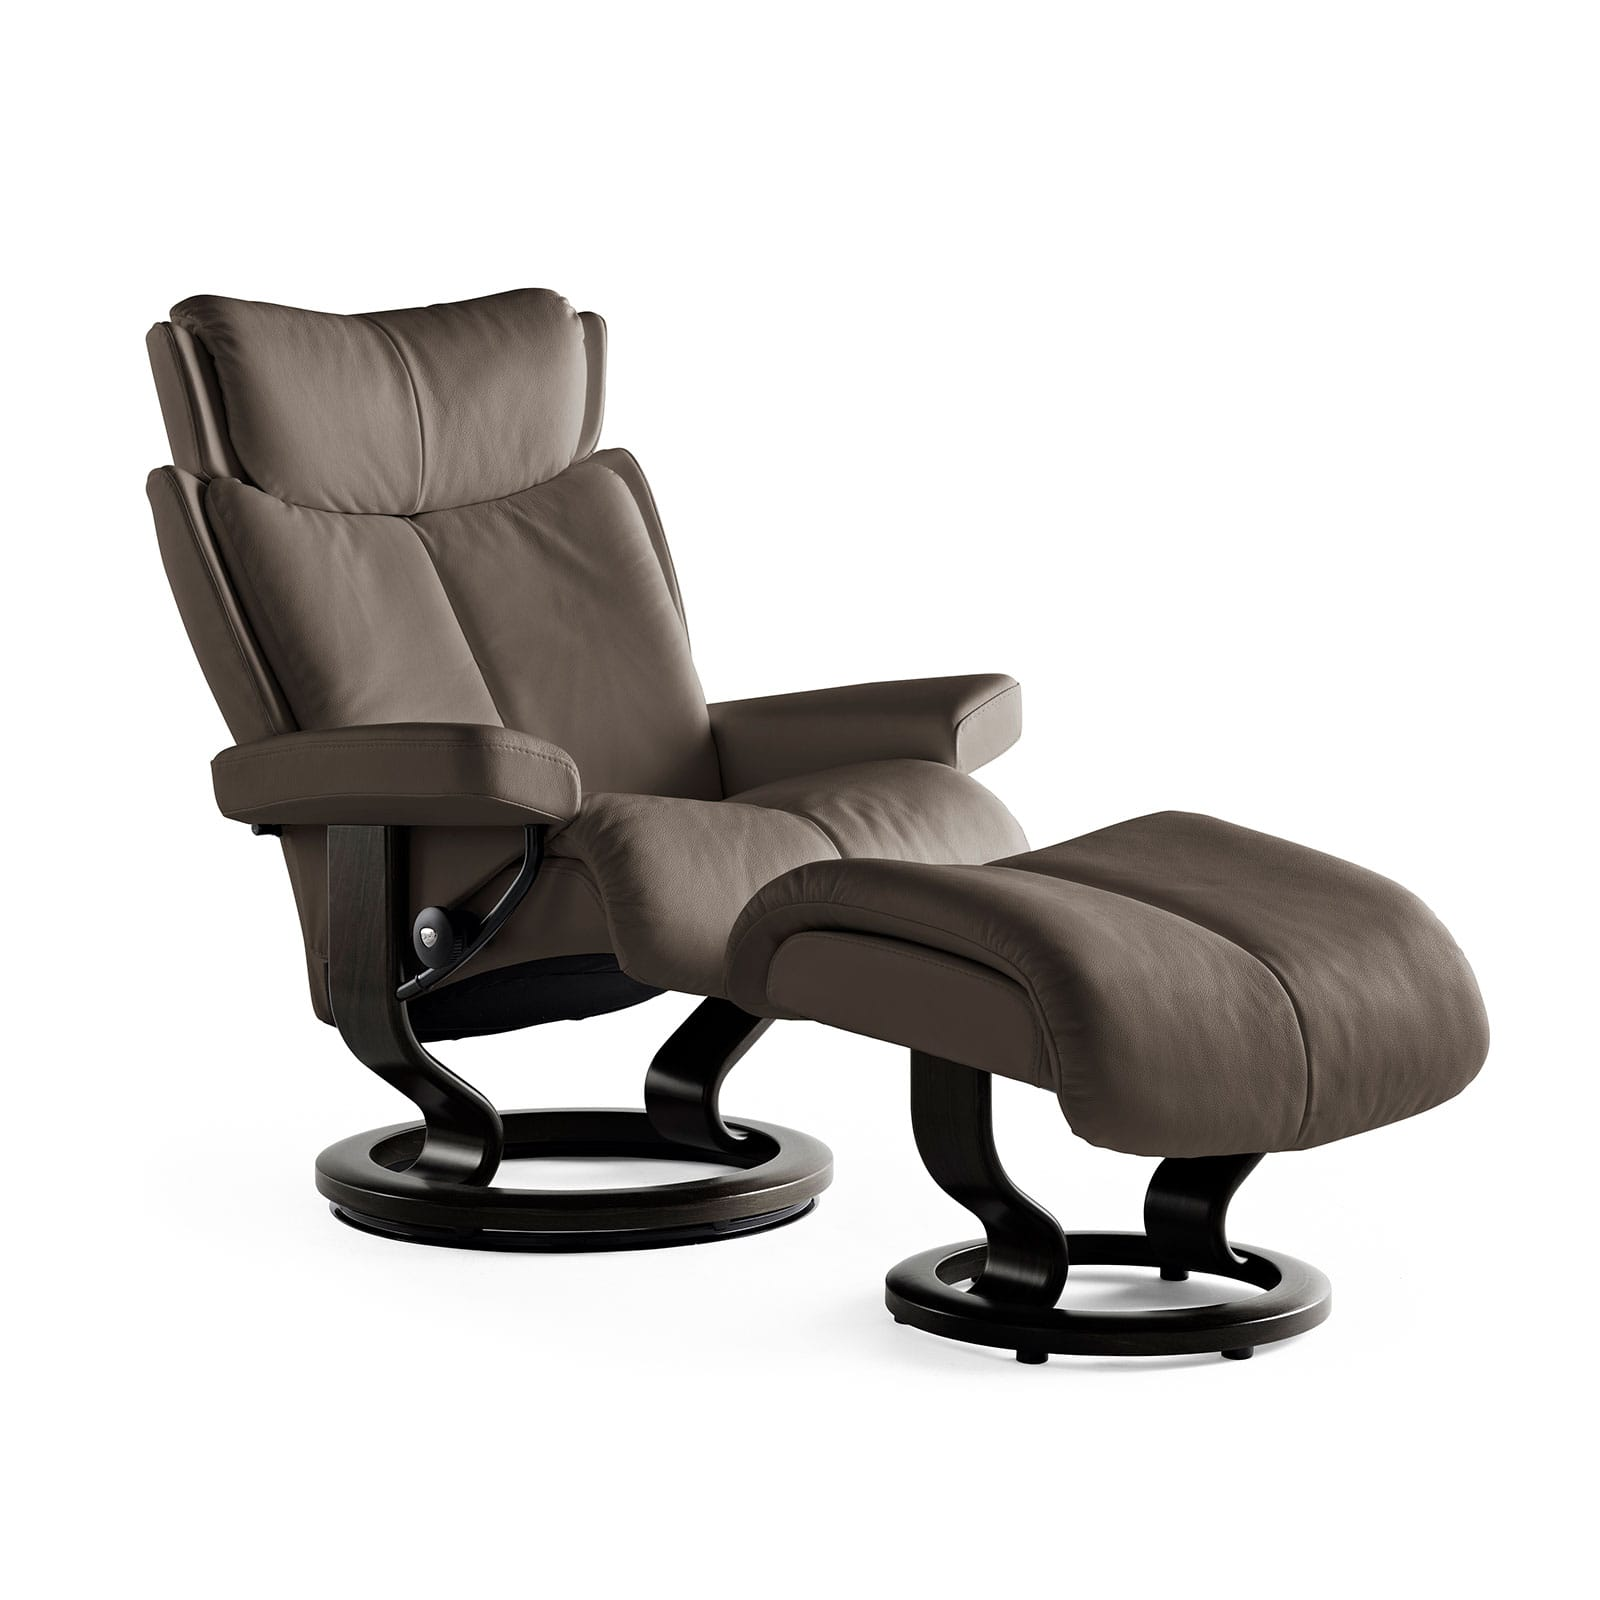 Relaxsessel stressless  Stressless Relaxsessel MAGIC Lederfarbe khaki Hocker | Stressless